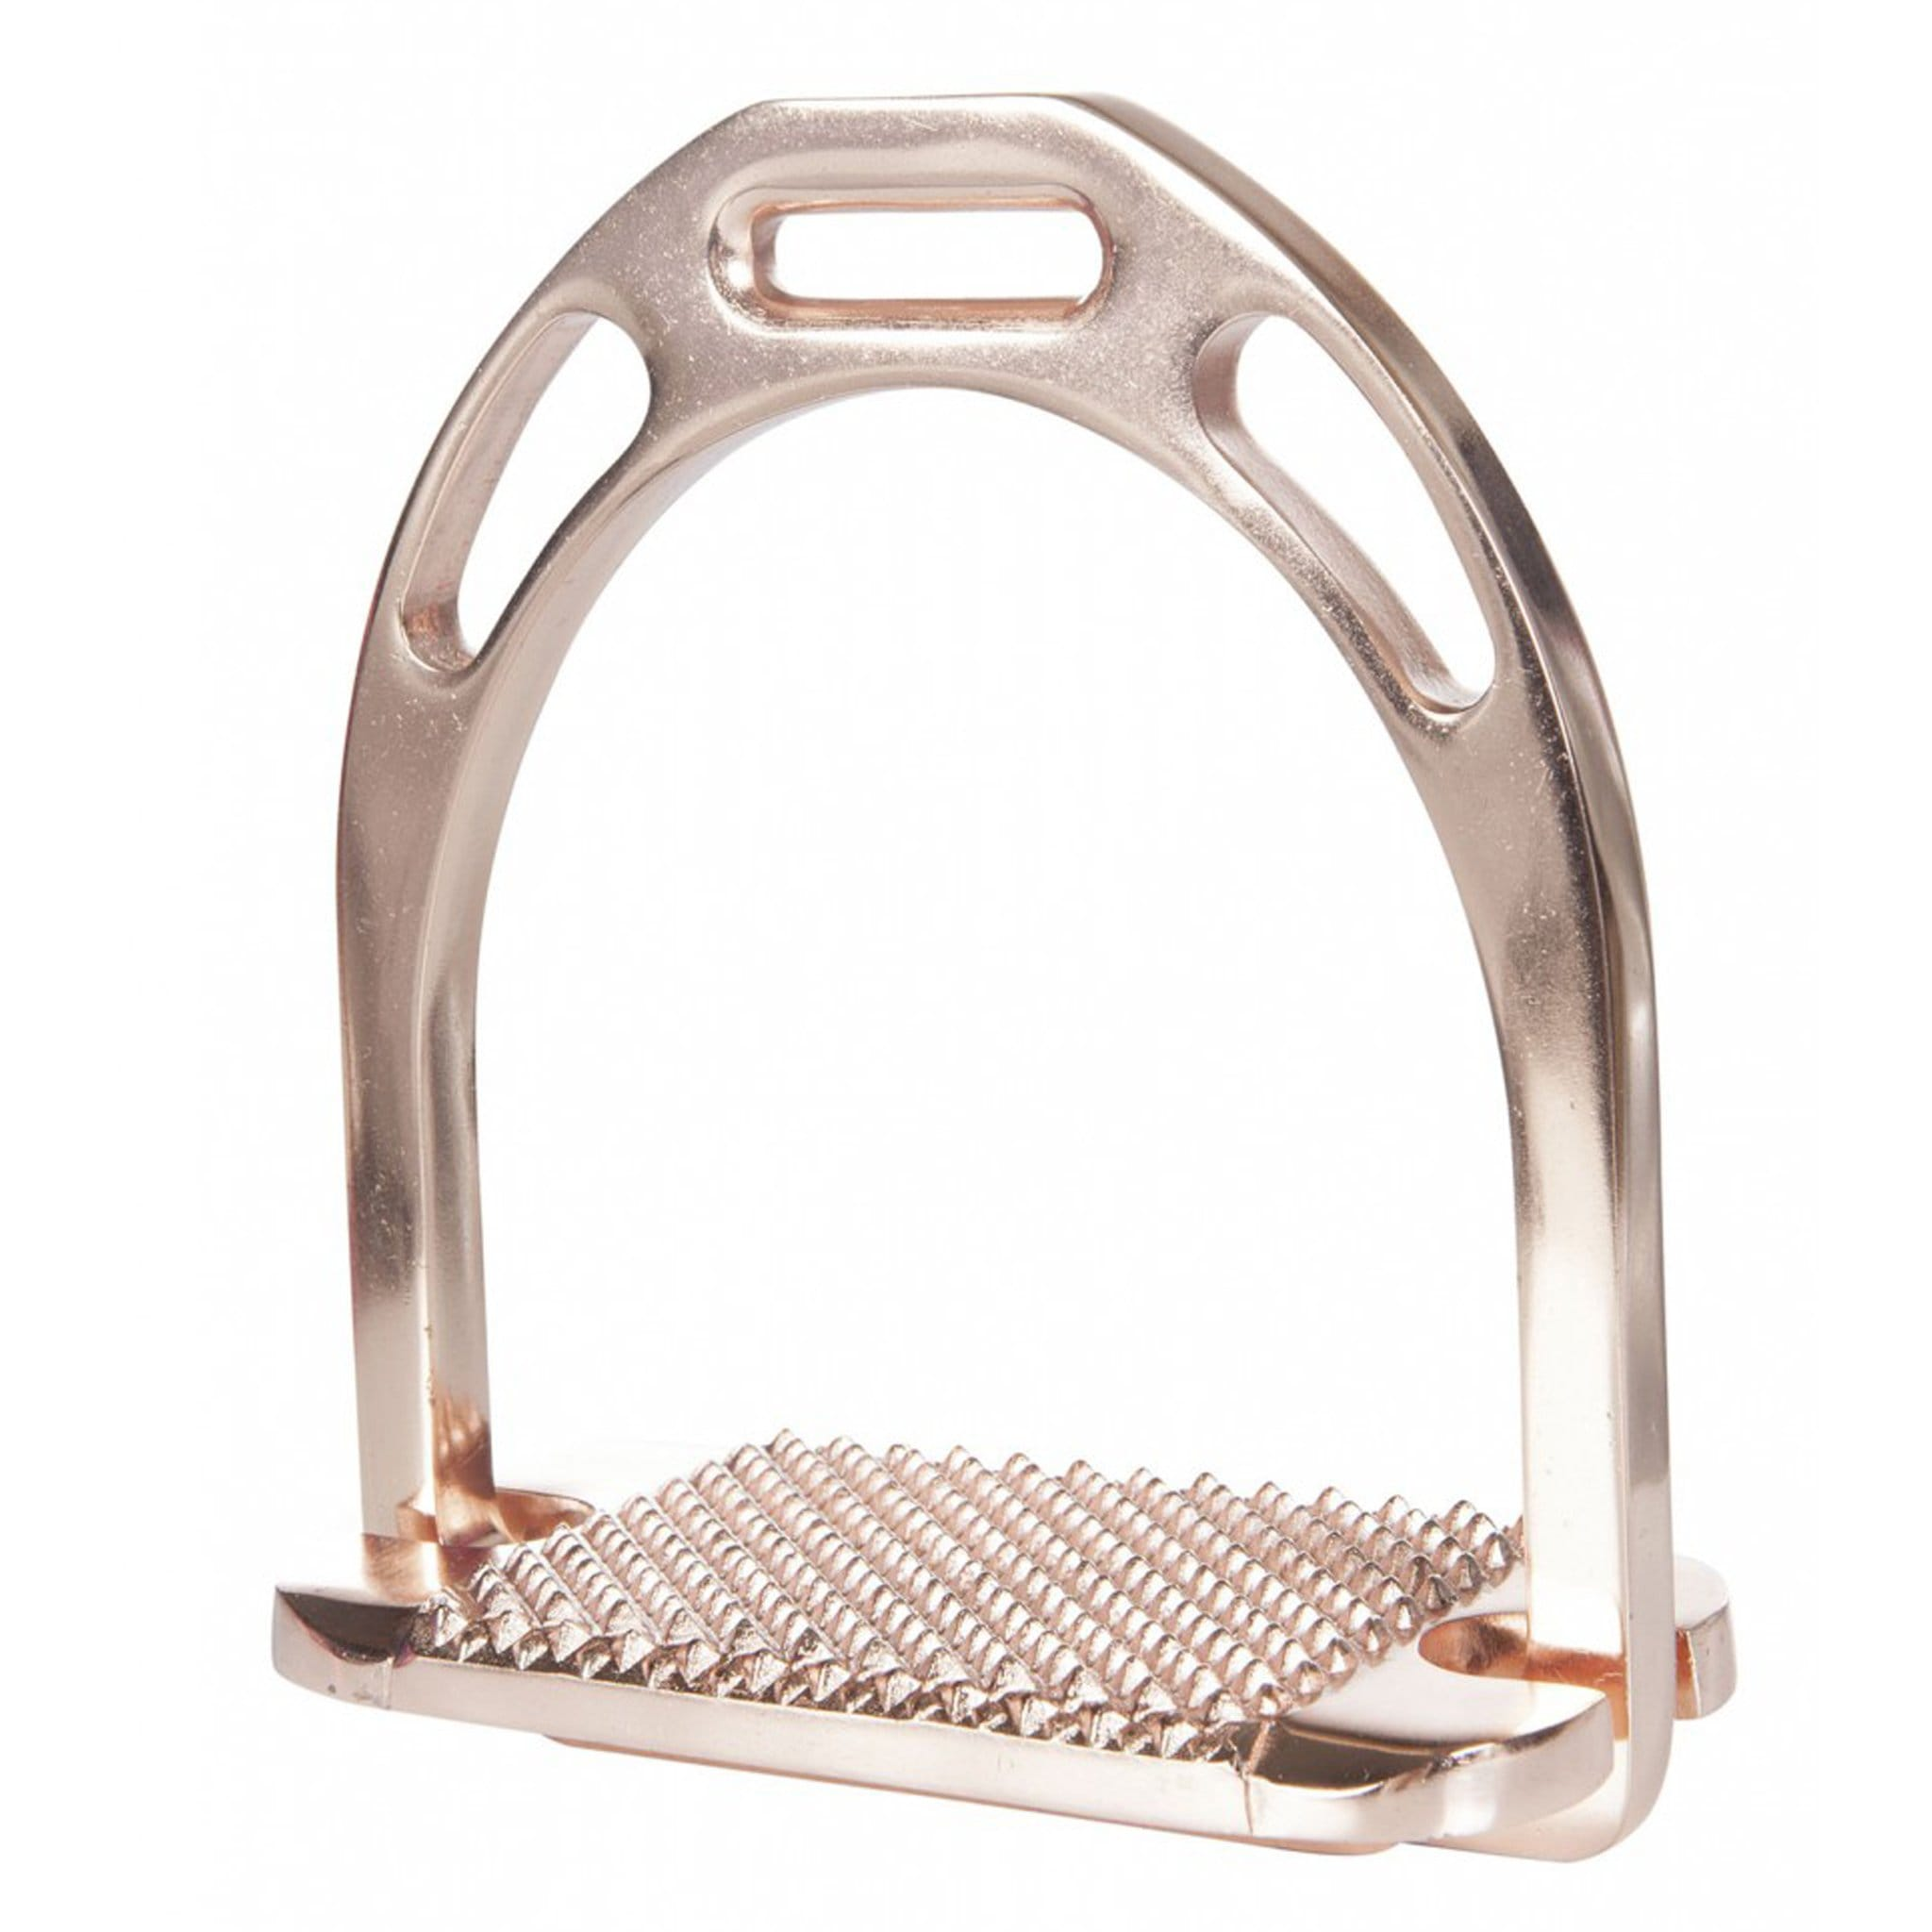 HKM Space Stirrups Rose Gold x2 10819